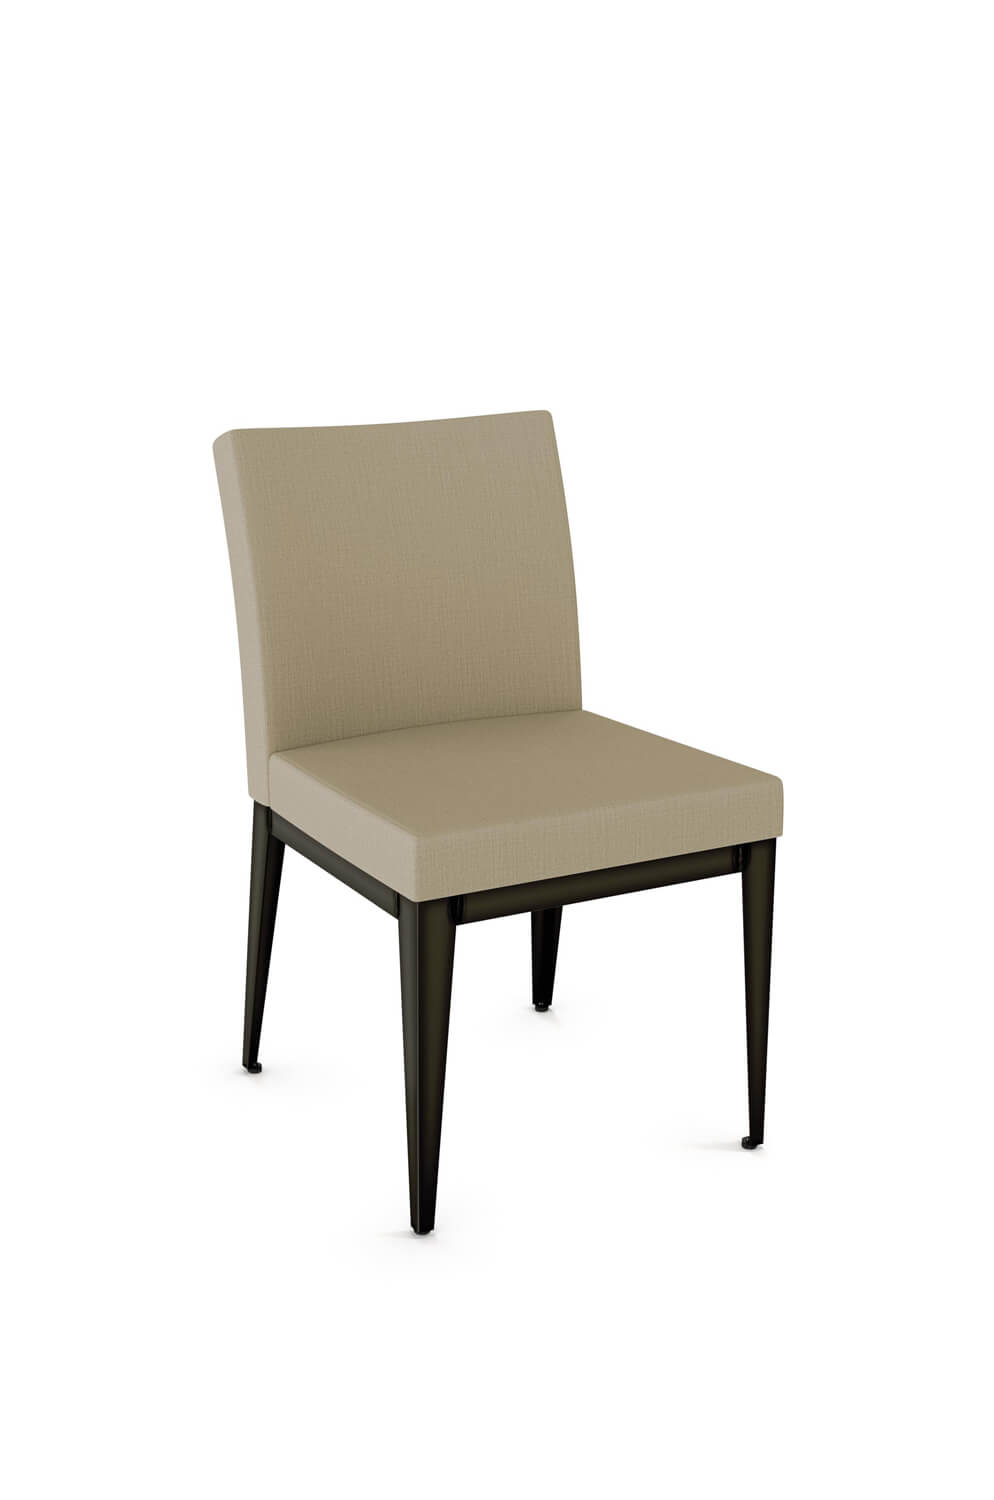 Admirable Pablo Upholstered Dining Chair Creativecarmelina Interior Chair Design Creativecarmelinacom